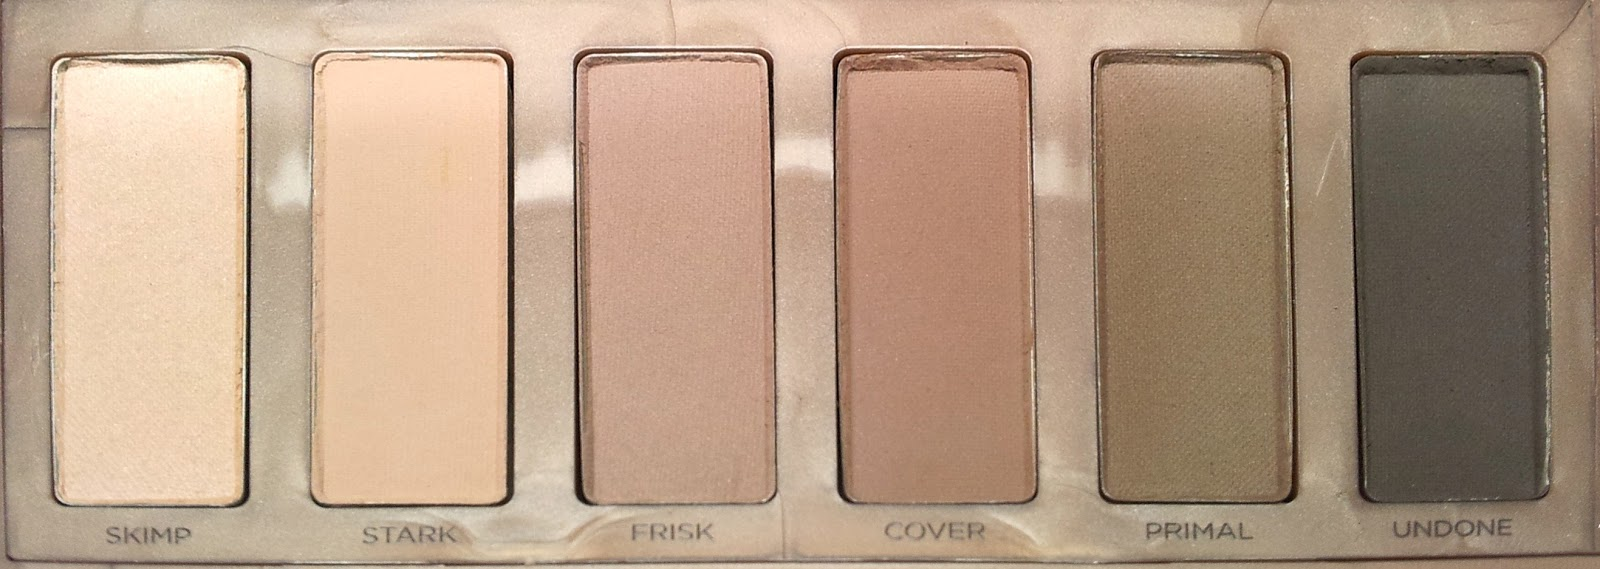 Urban Decay Naked 2 Basics Eyeshadow Palette Farben